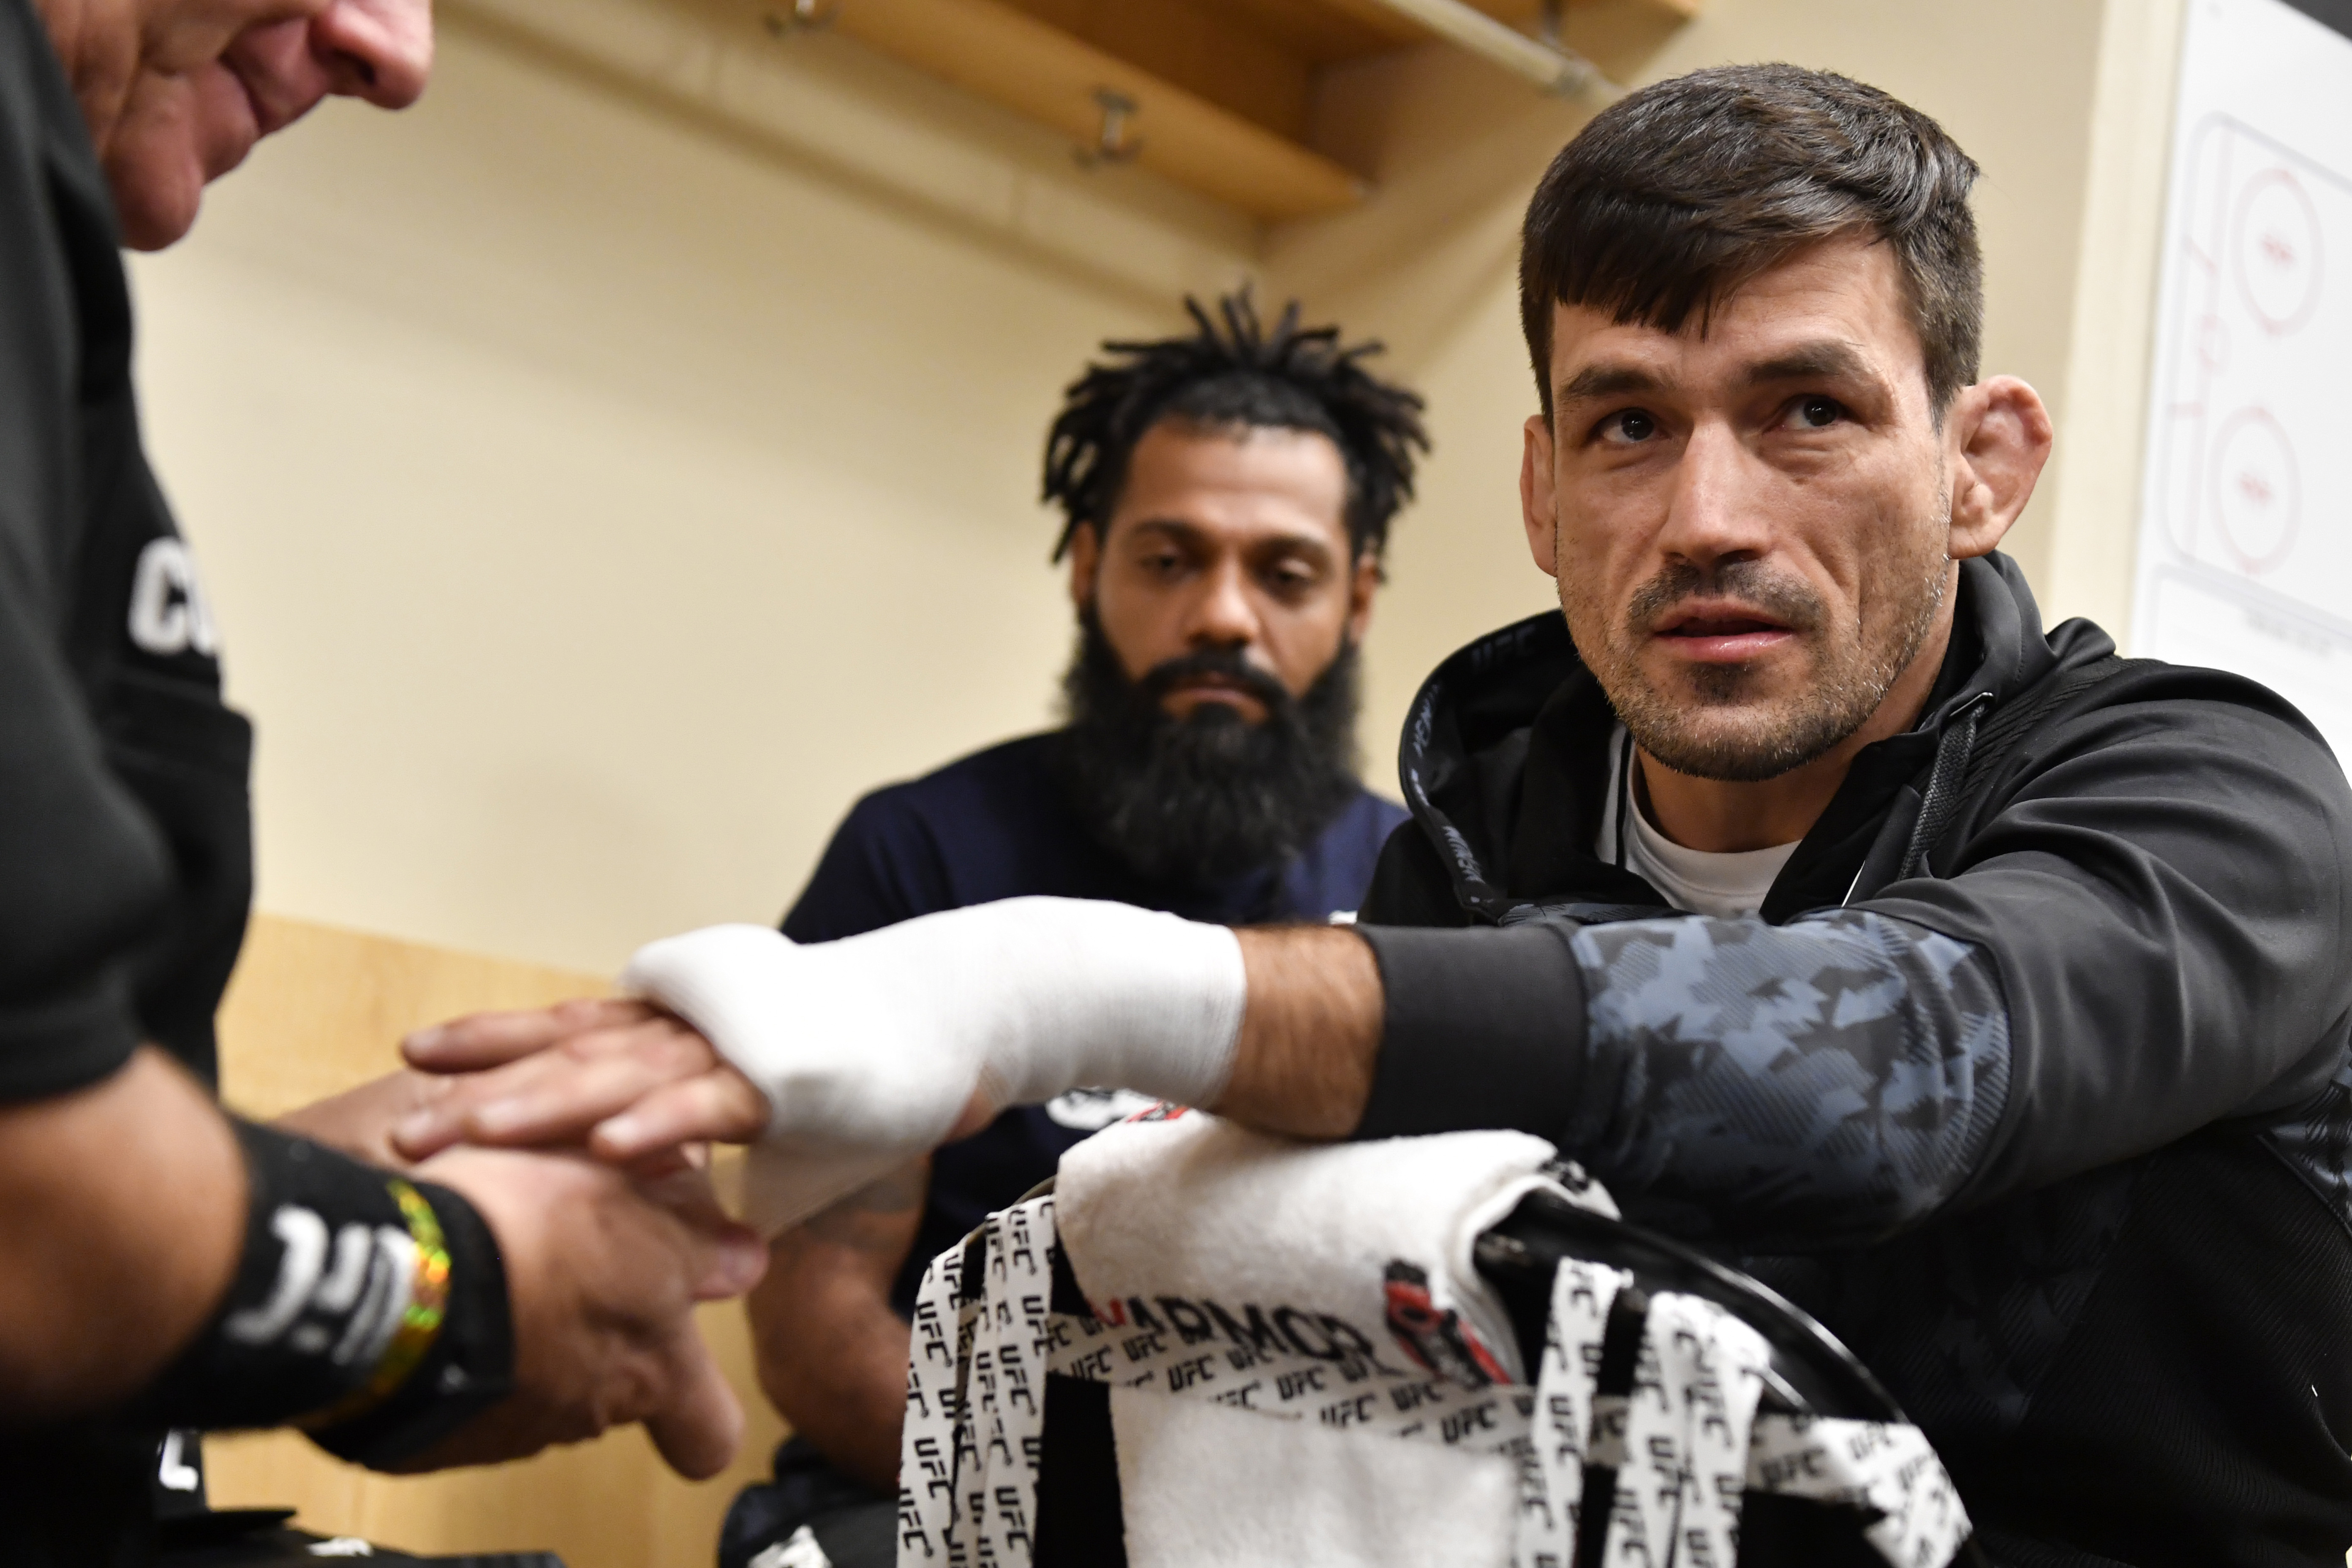 Maia prepares for his bout against Belal Muhammad at UFC 263 back in June.